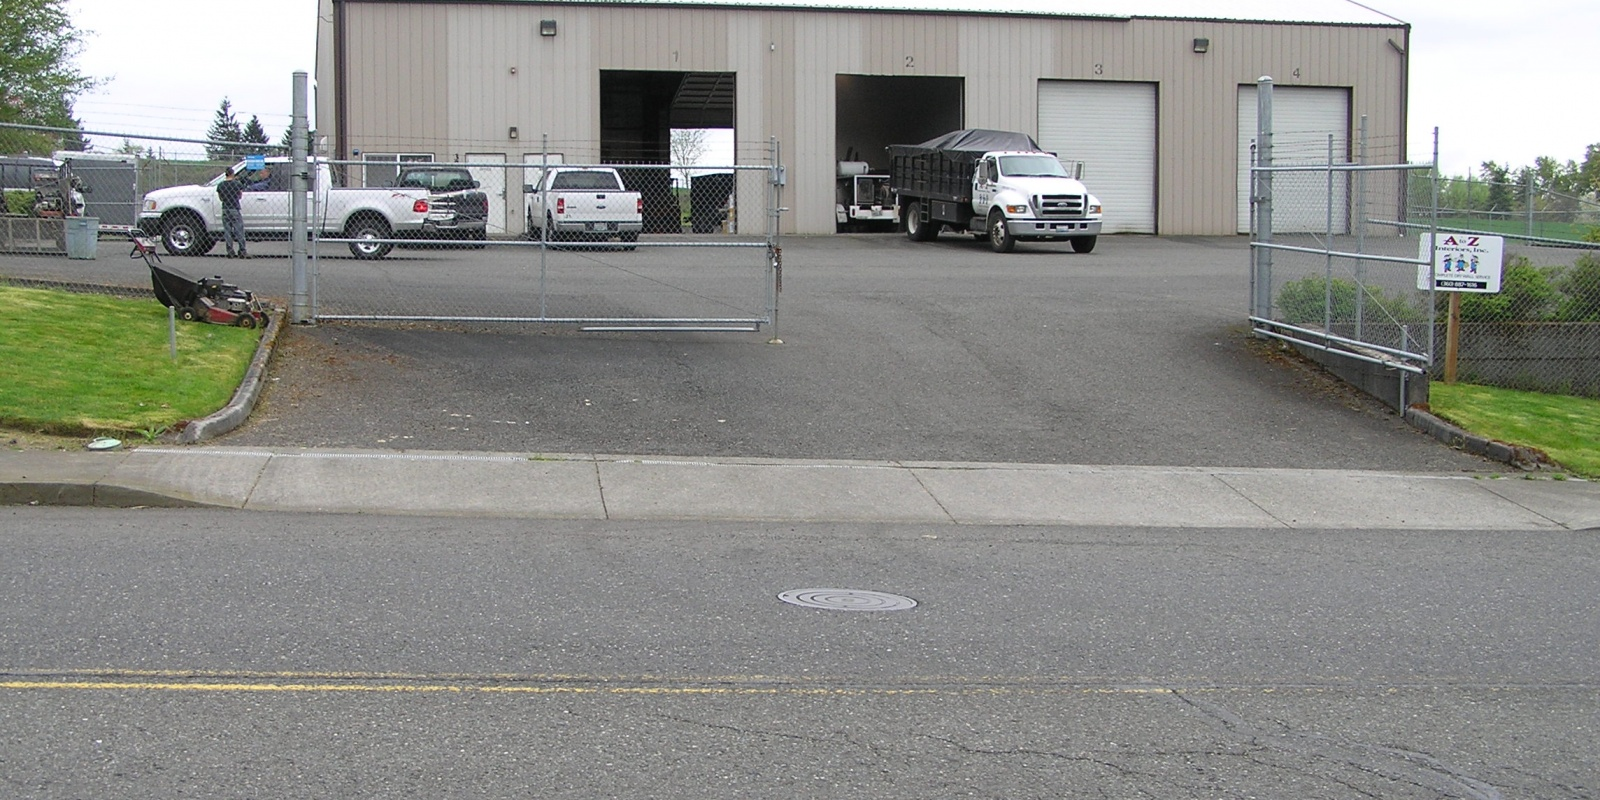 377 S 56th Pl. Ridgefield, WA, ,Industrial,Sold/Leased,377 S 56th Pl Ridgefield, WA,377 S 56th Pl. Ridgefield, WA ,1213